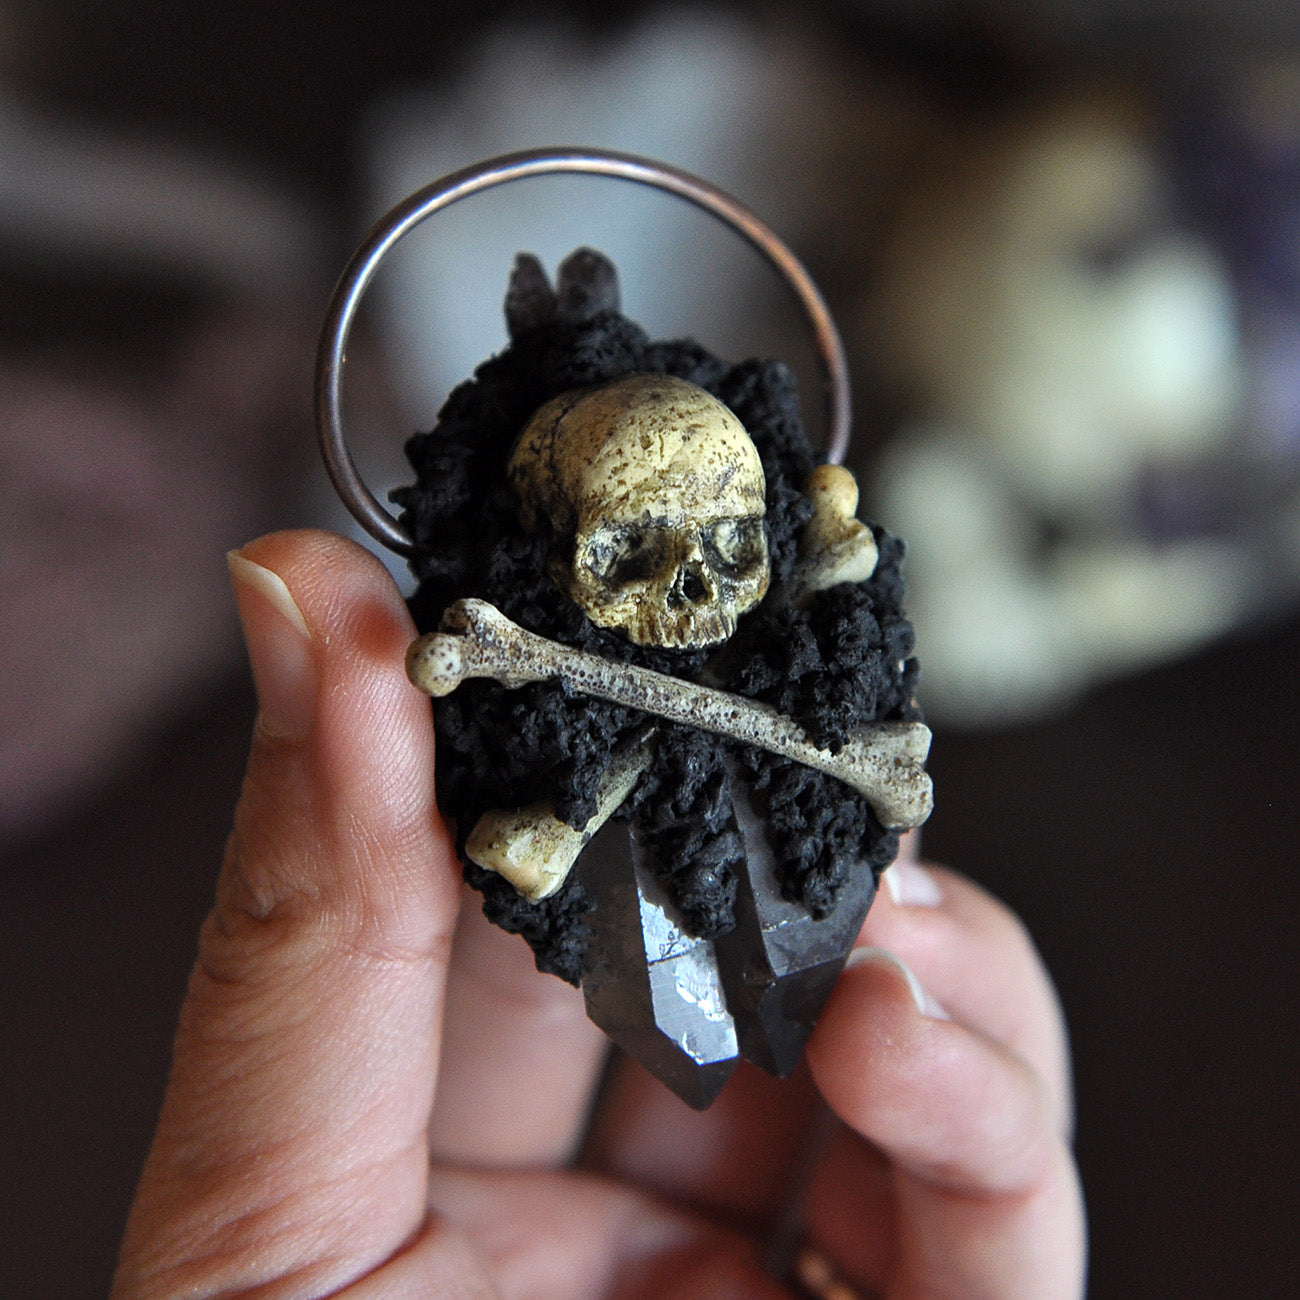 Hand Sculpted Realistic Skull and Bones Pendant, Black Amethyst, Smokey Quartz, Gothic Style